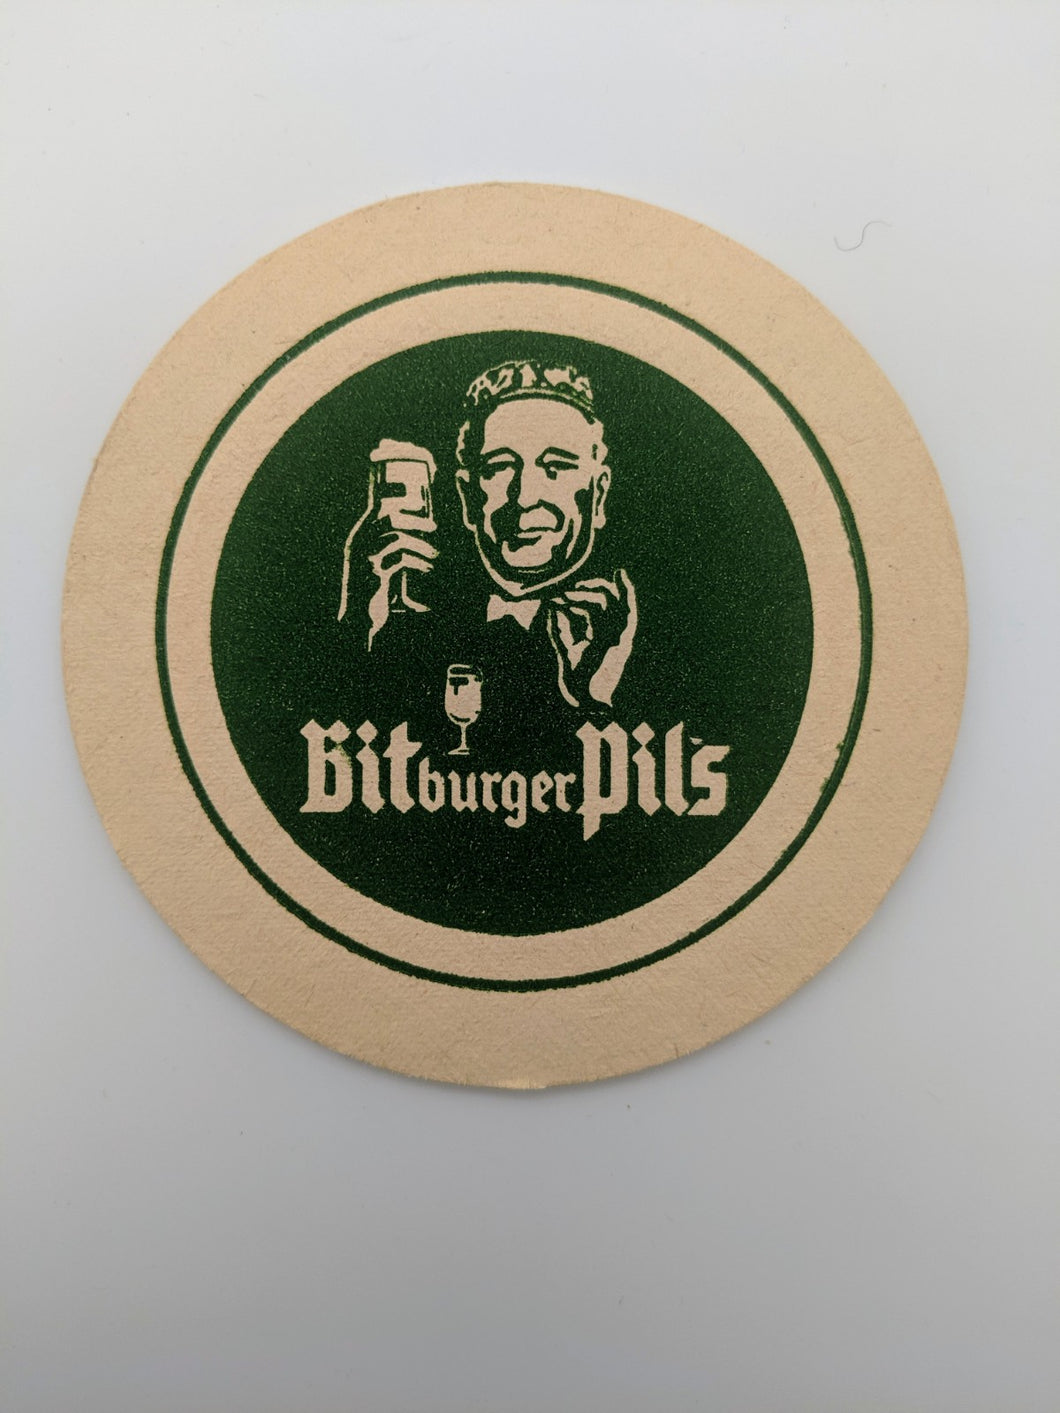 Vintage Beer Coaster Germany Bitburger Pils